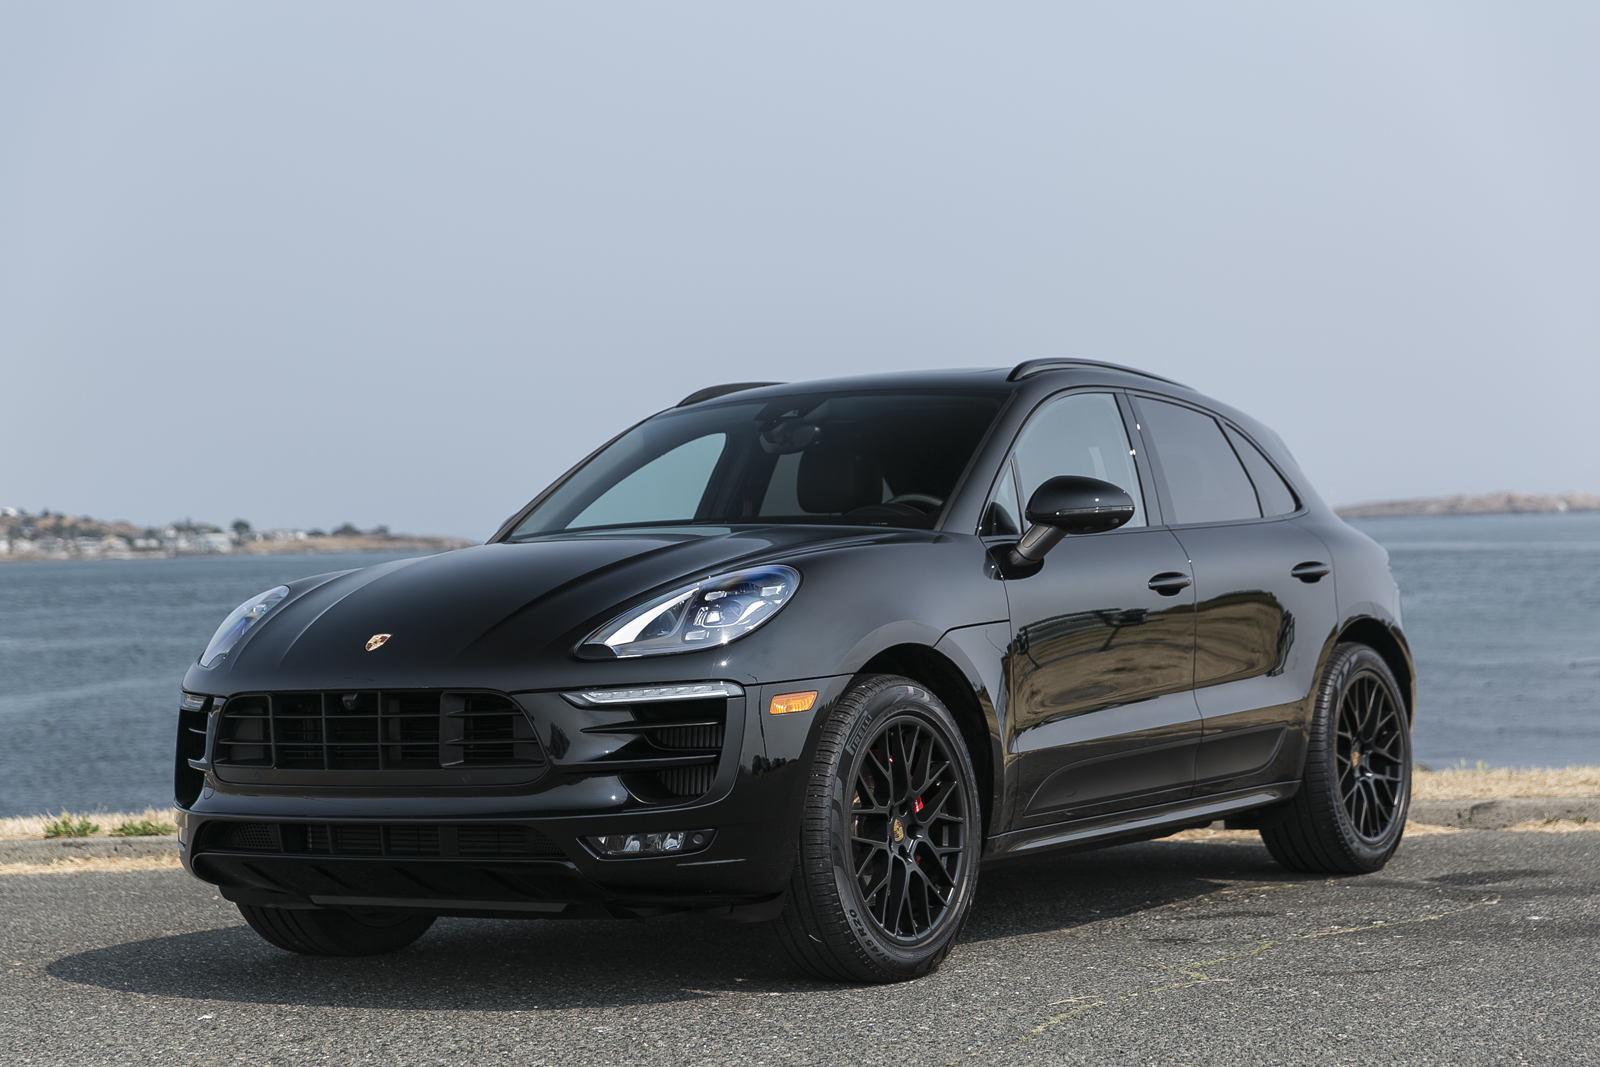 2017 Porsche Macan Gts Silver Arrow Cars Ltd